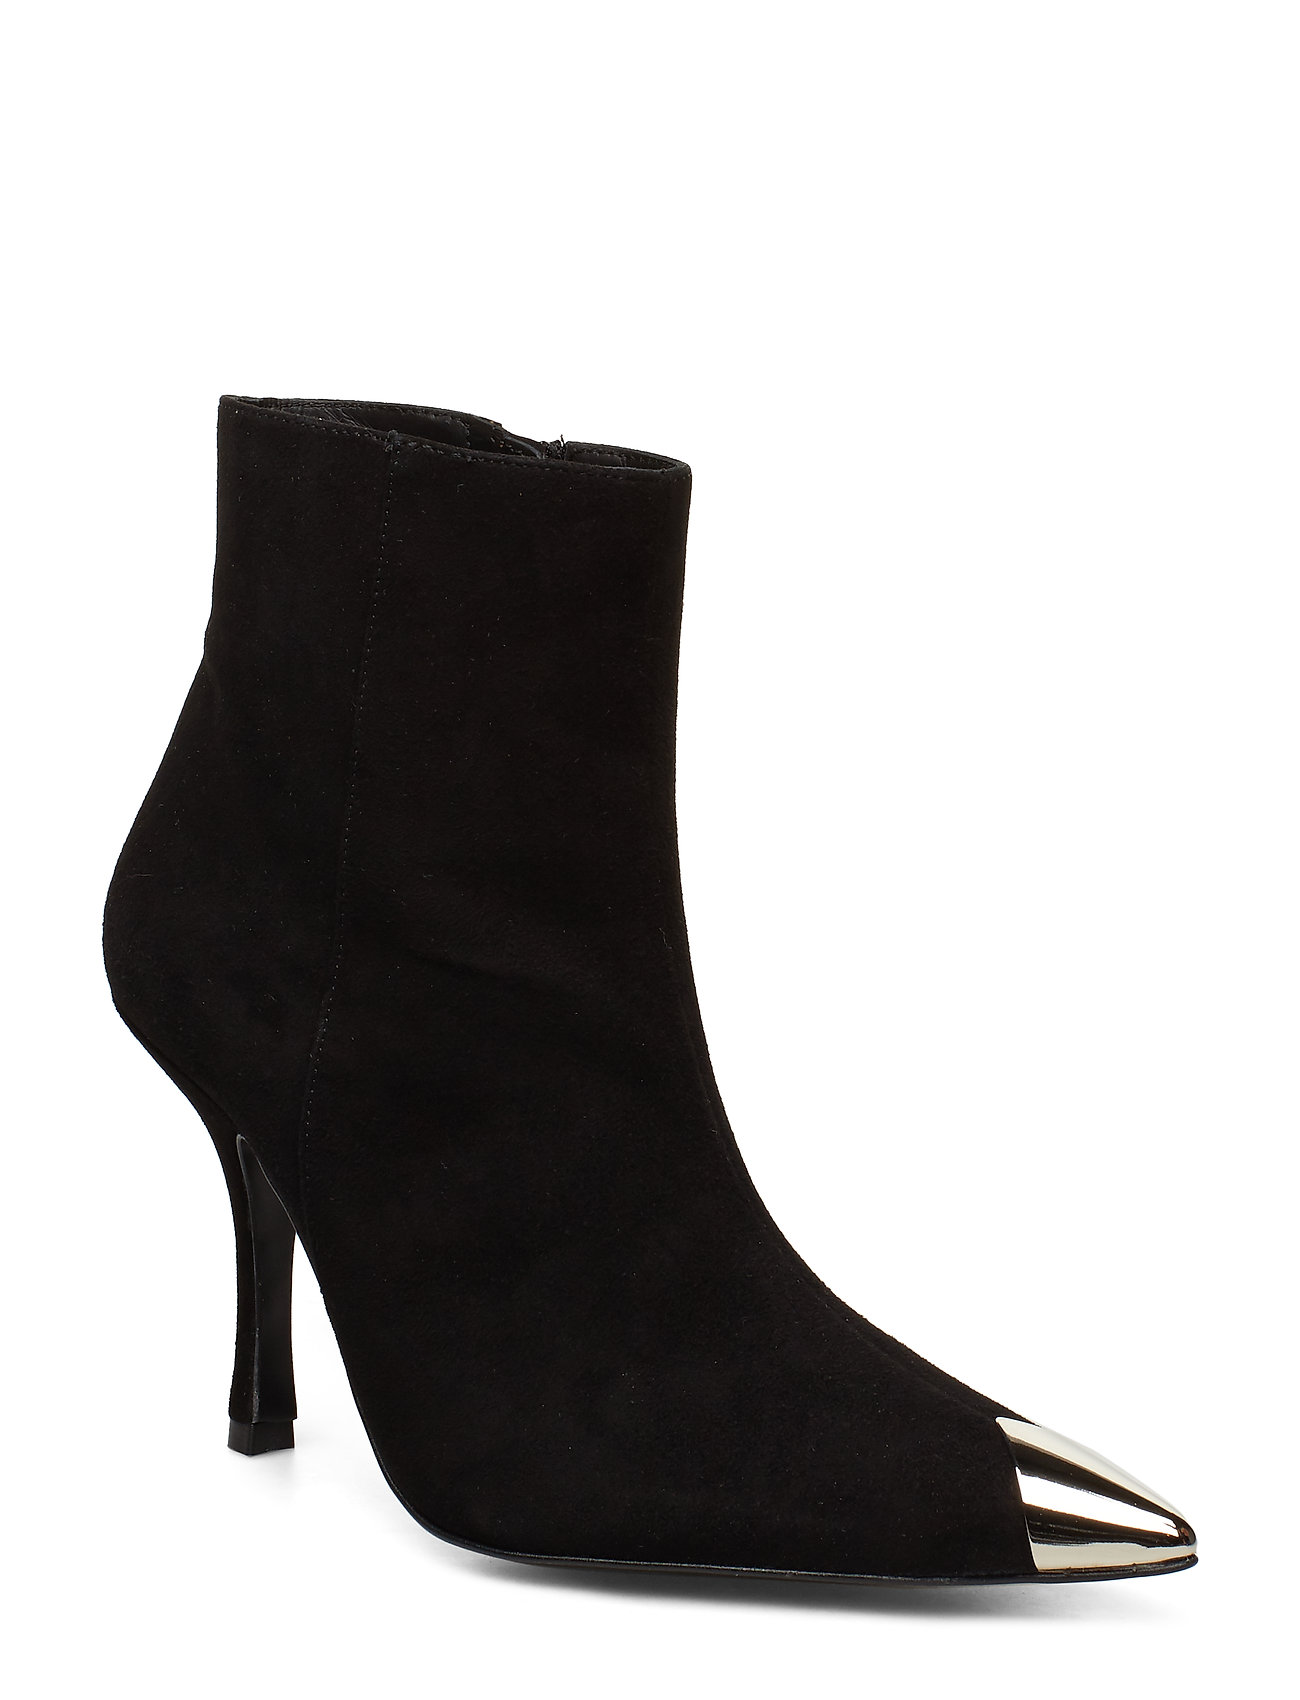 Image of Viktoria Radar Suede / Silver Toe Cap Boot Shoes Boots Ankle Boots Ankle Boot - Heel Sort Flattered (3406194211)